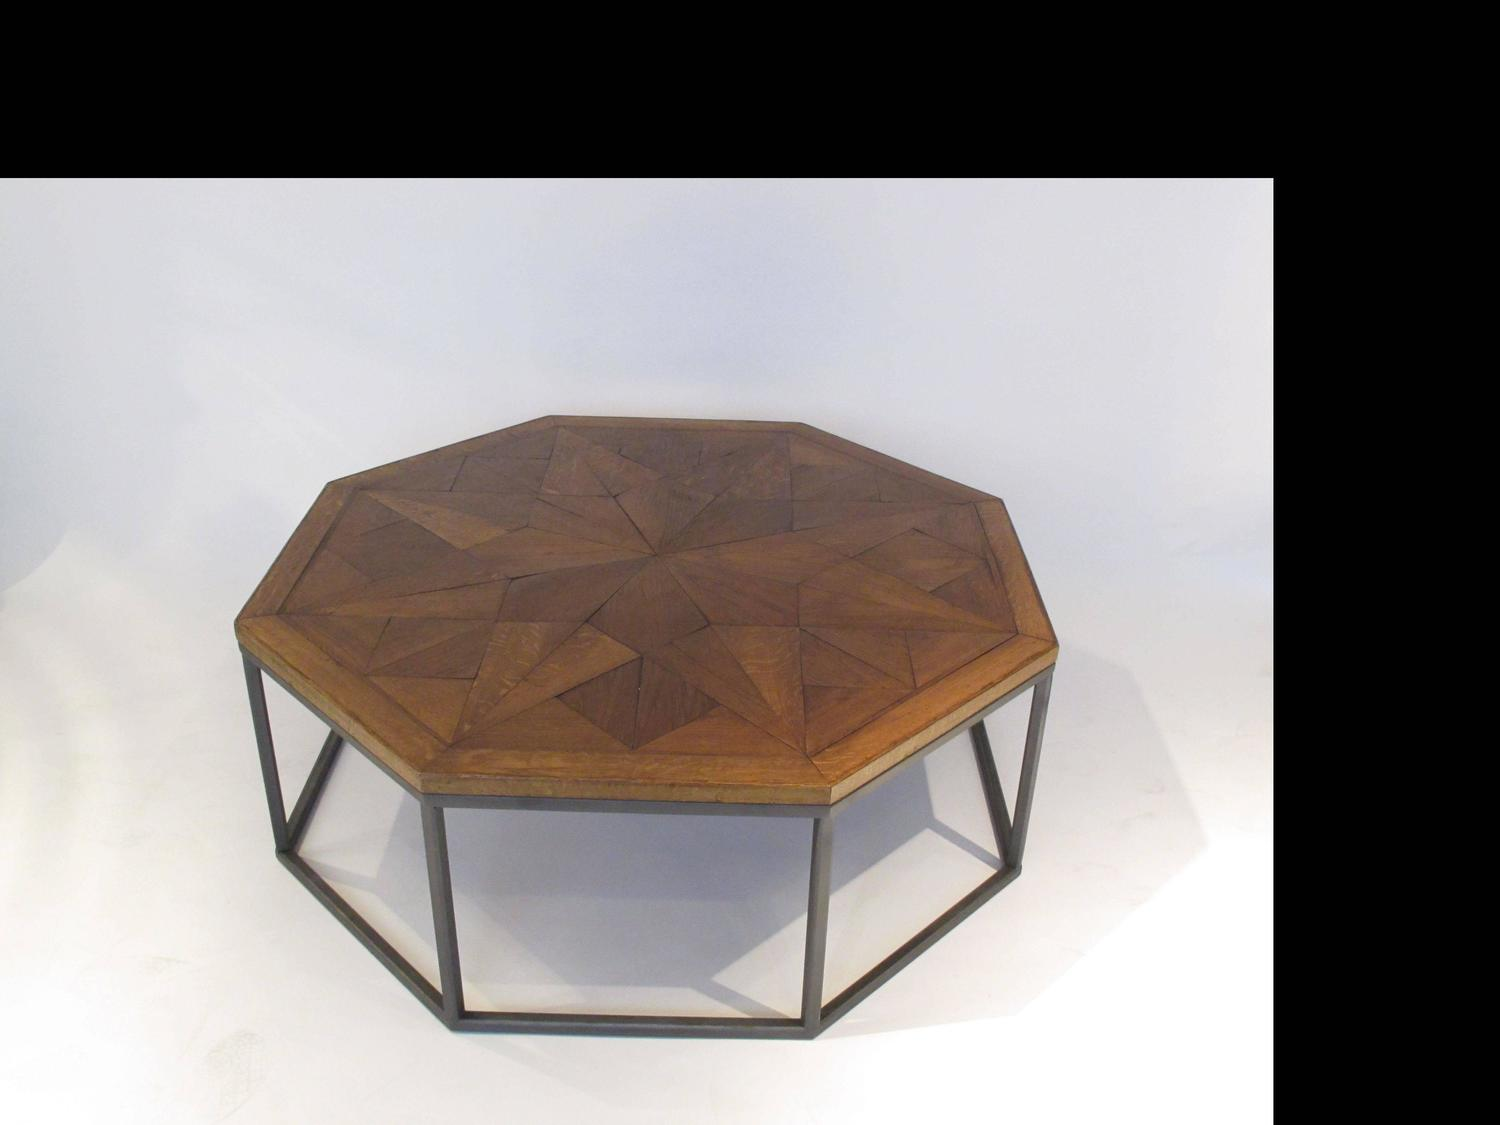 Bespoke Octagon Coffee Table With A 19th Century Oak Top For Sale At 1stdibs